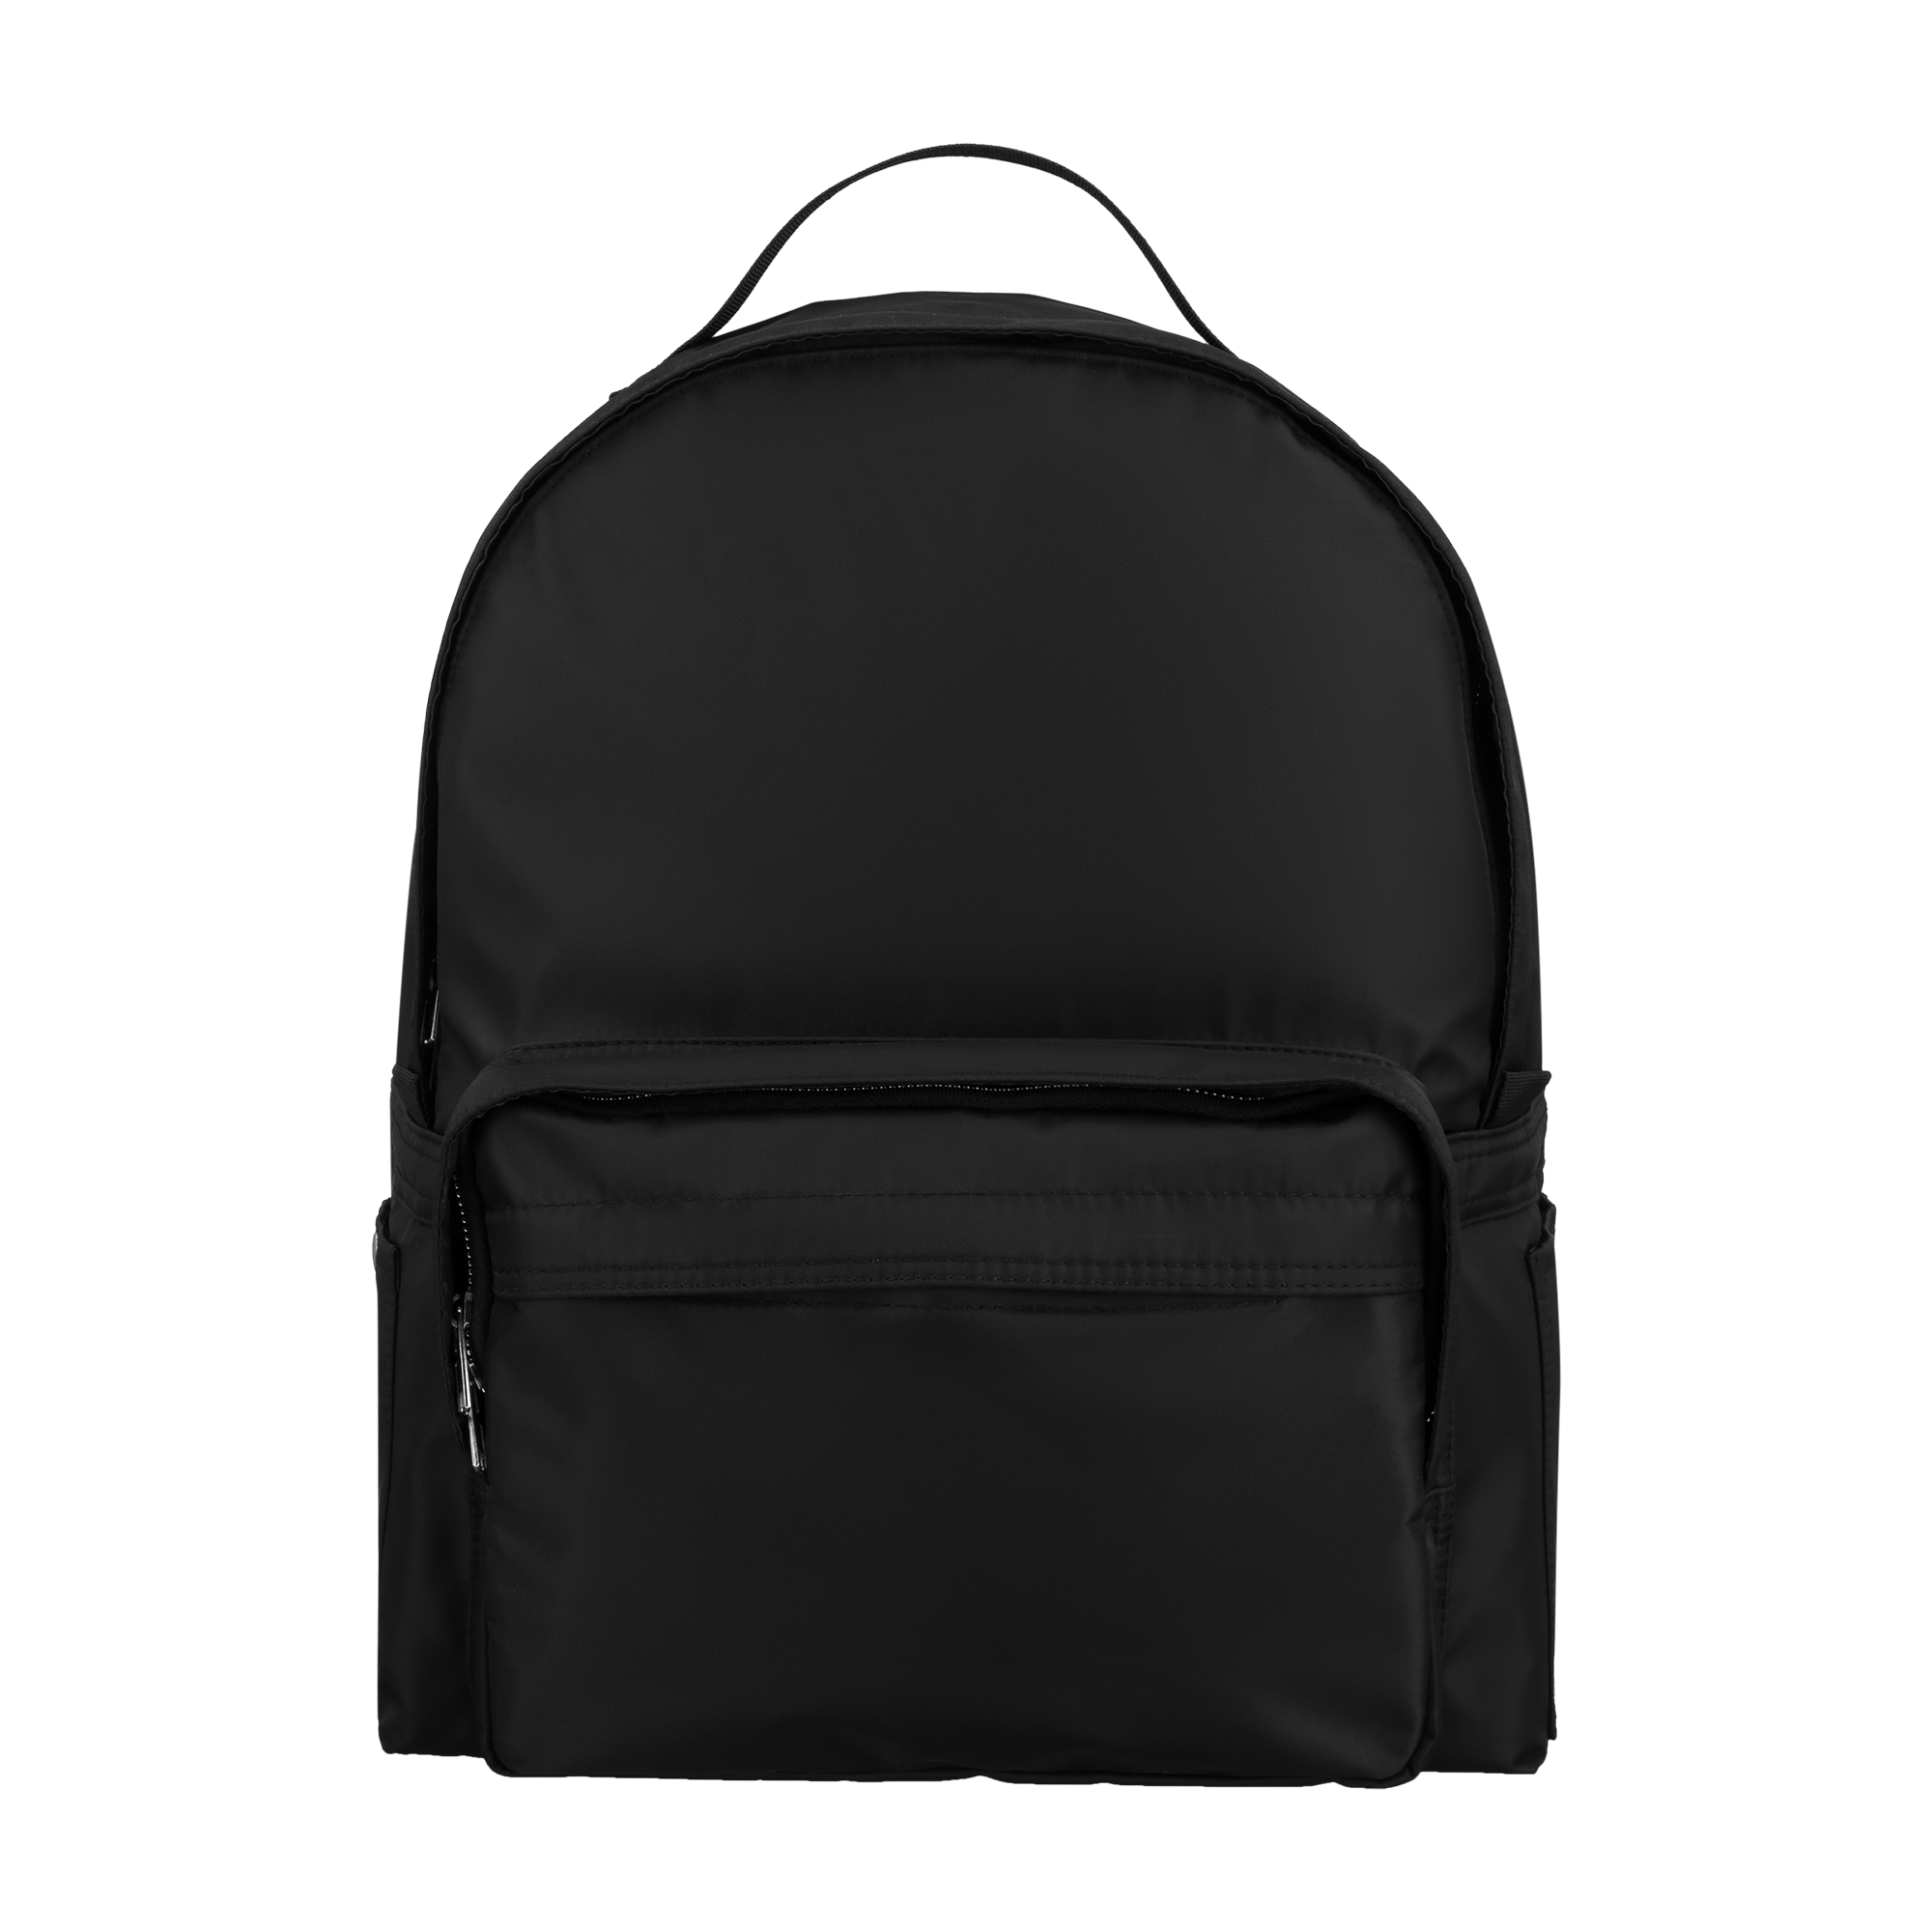 black bag product image